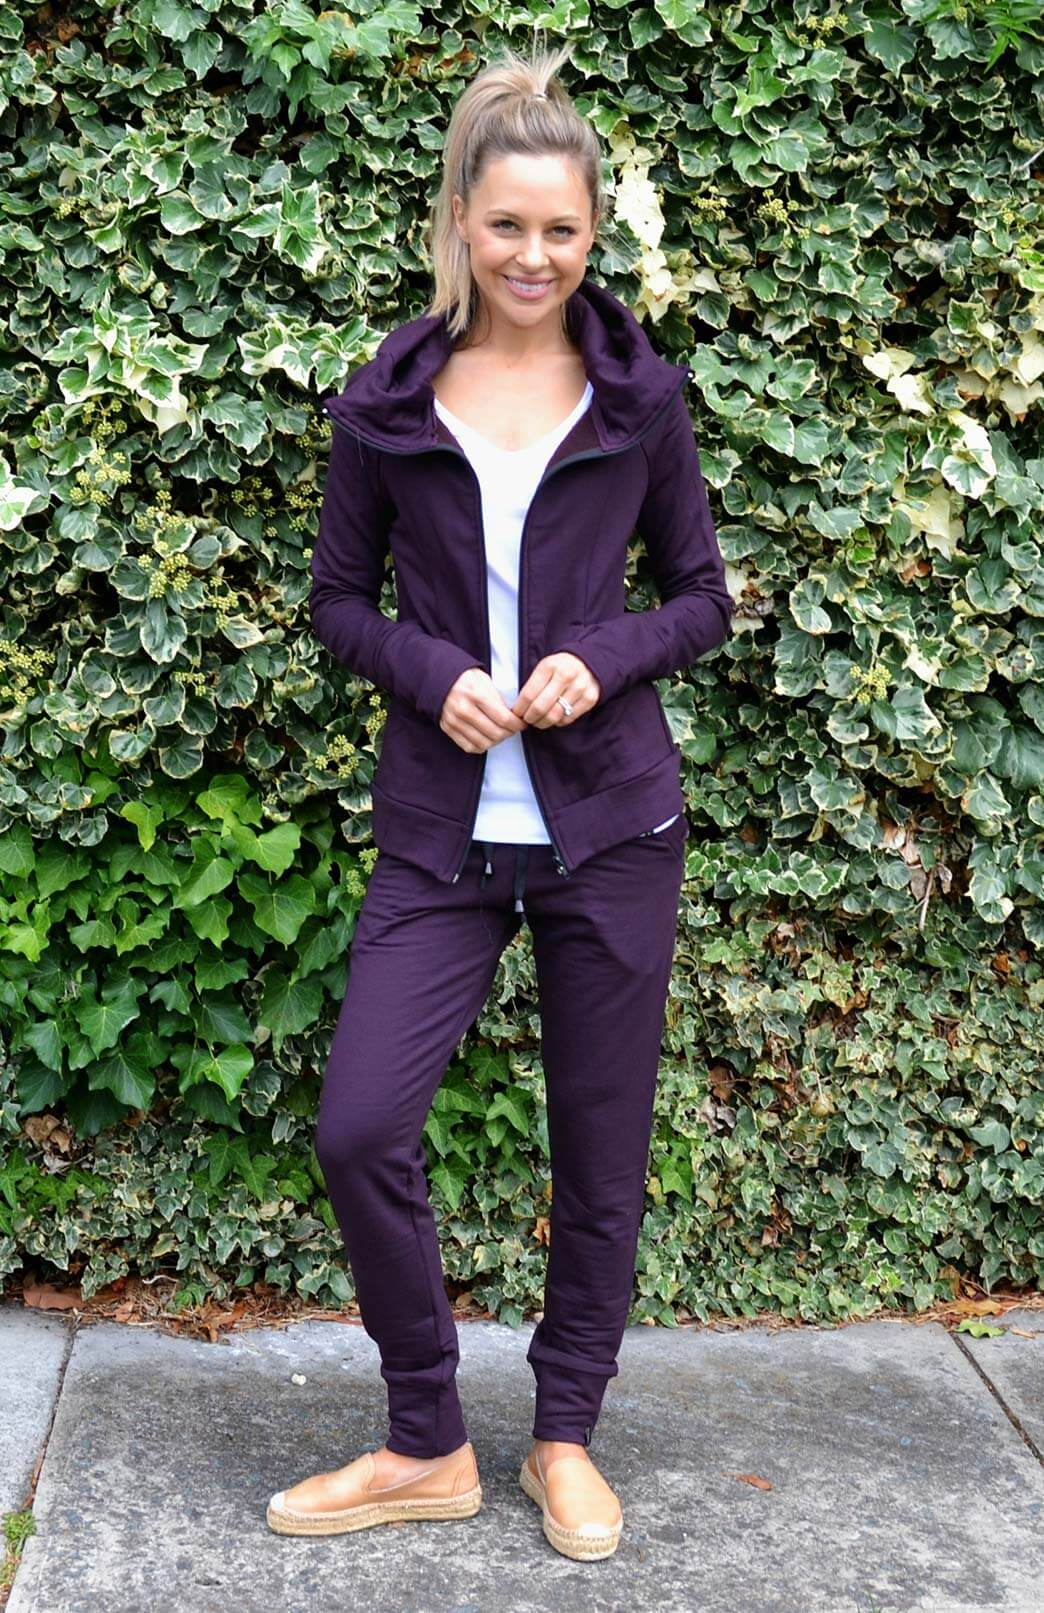 Fitted Fleece Hoody Jacket - Women's Dark Purple Wool Jacket with pockets and hood - Smitten Merino Tasmania Australia